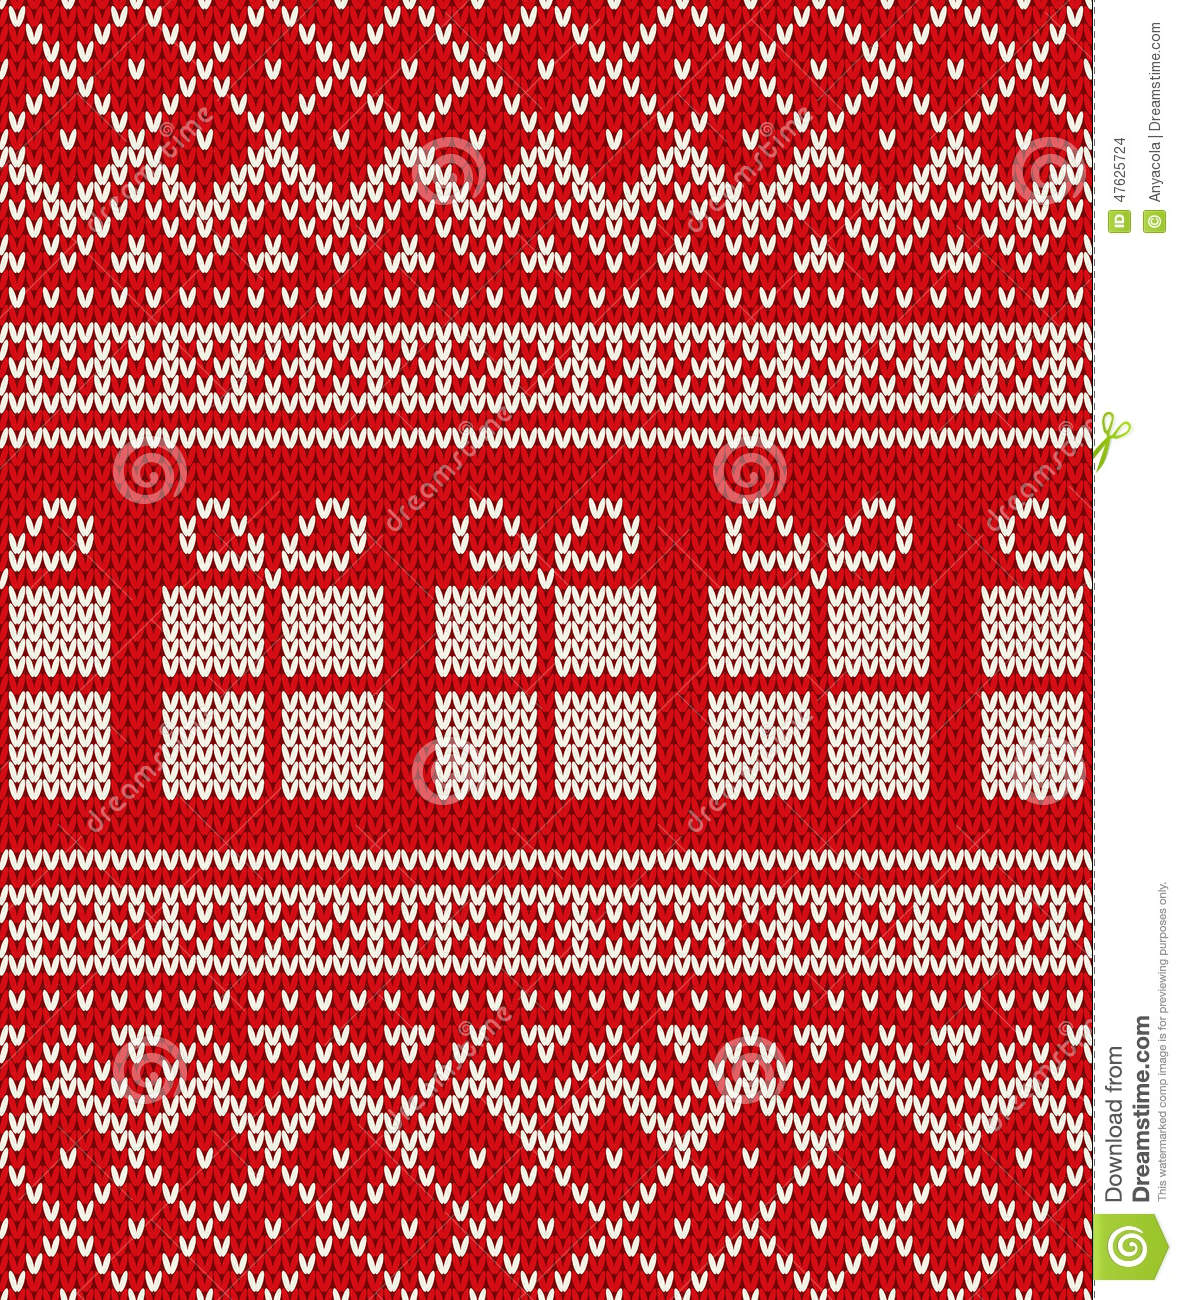 Knitting Pattern Christmas Cardigan : Christmas Holiday Sweater Design With Gift Boxes. Seamless Patte Stock Vector...